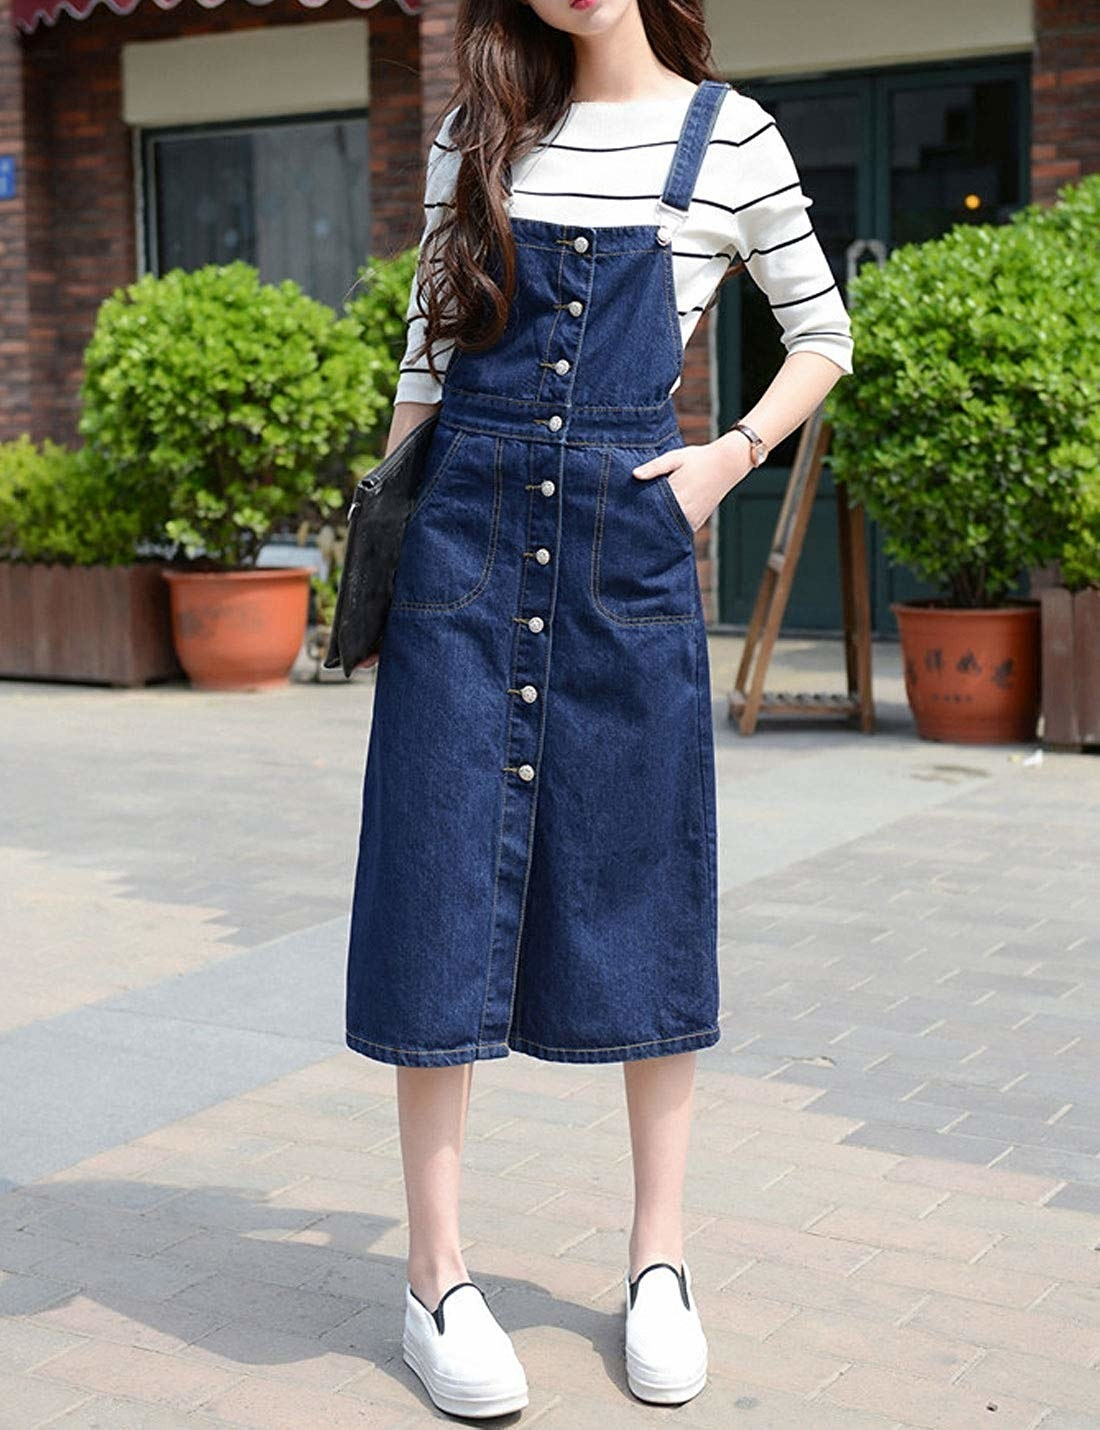 A model wearing the midi-length, button front dress in the dark wash with their hand in one of the side pockets